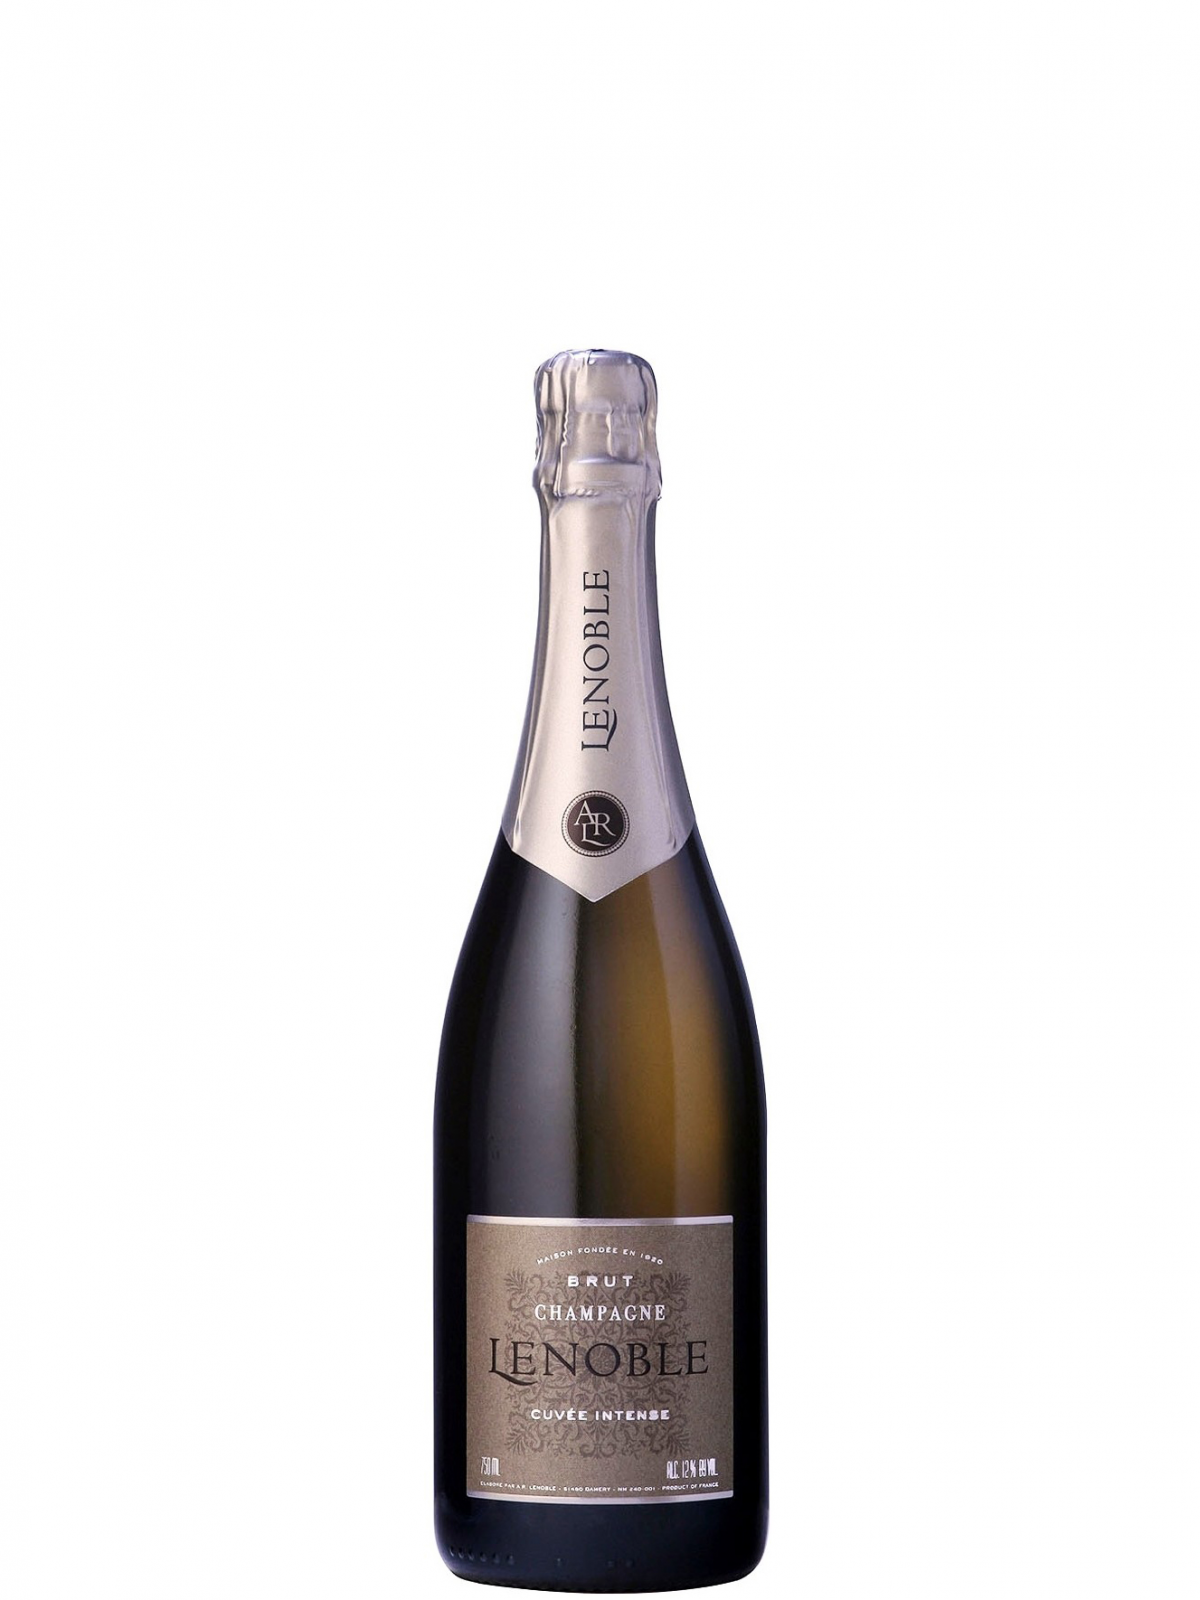 A R LENOBLE INTENSE BRUT